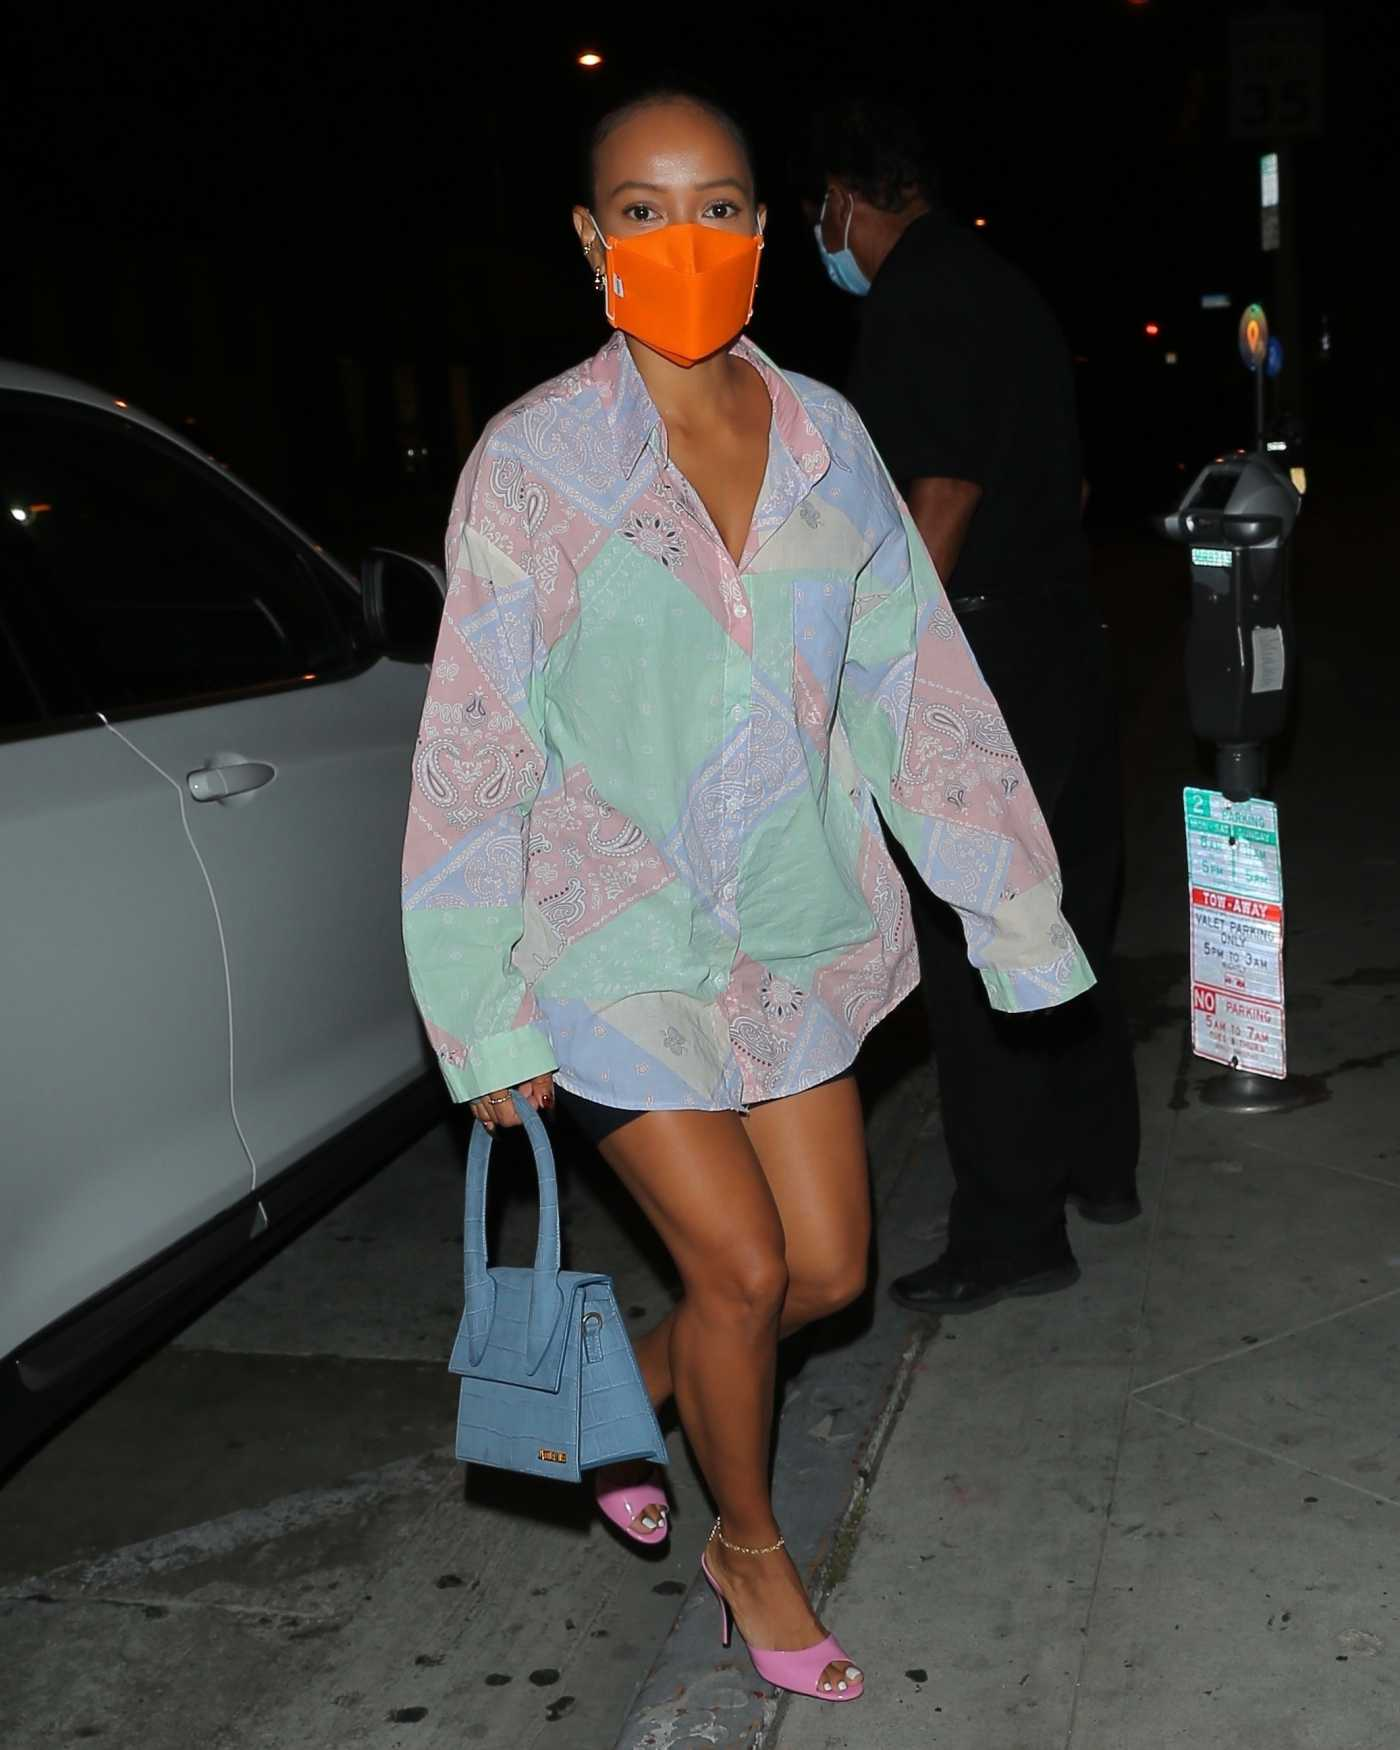 Karrueche Tran in an Orange Protective Mask Steps Out for Dinner at Catch in West Hollywood 08/22/2020